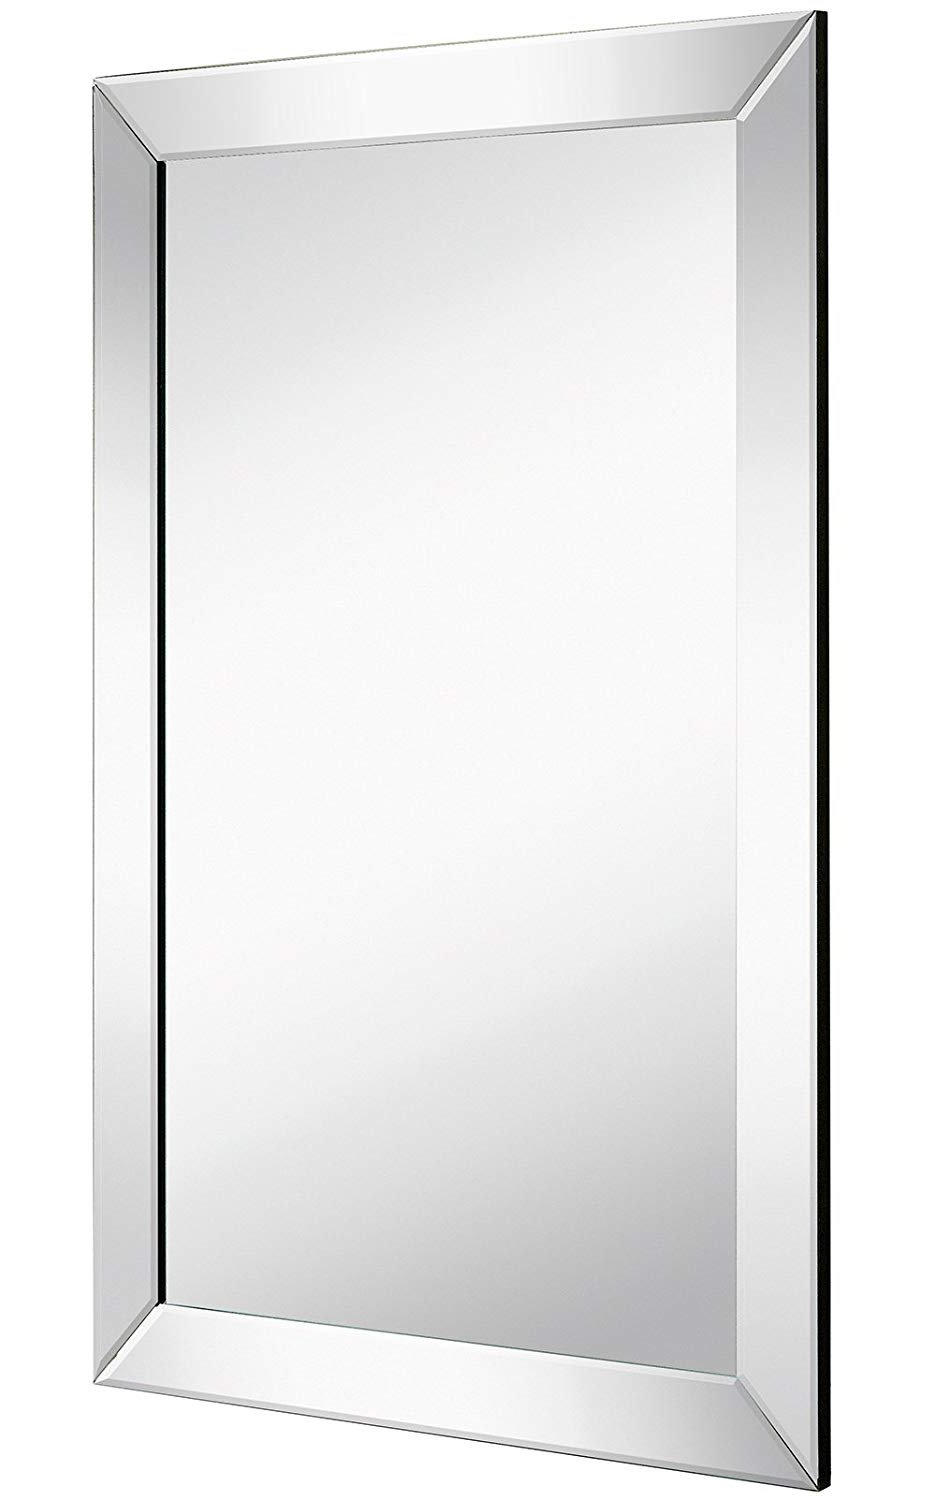 Famous Large Flat Framed Wall Mirror With 2 Inch Edge Beveled Mirror Frame With Regard To Flat Wall Mirrors (View 4 of 20)